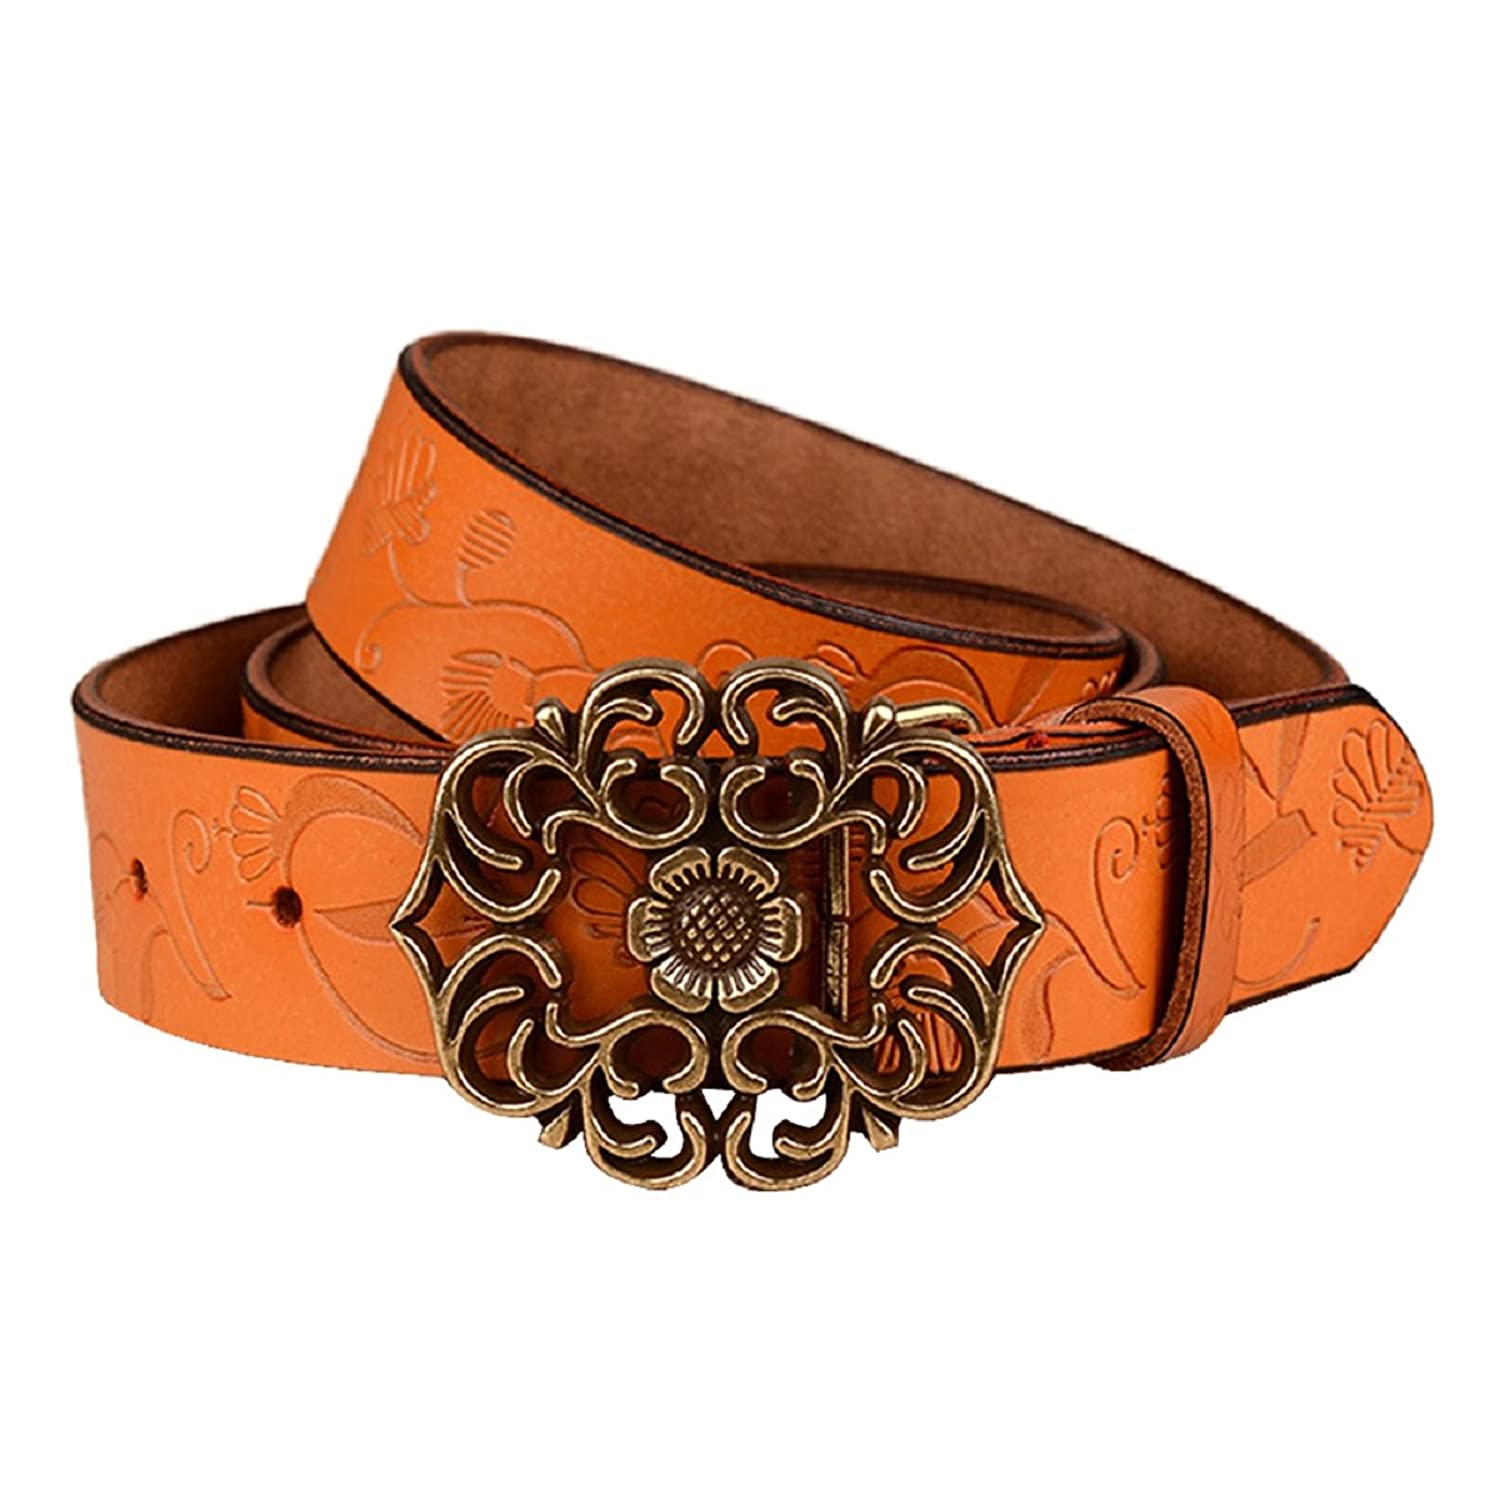 Ularmo Women Girl Flower Antique Palace Retro Fashion Waist Leather Belt